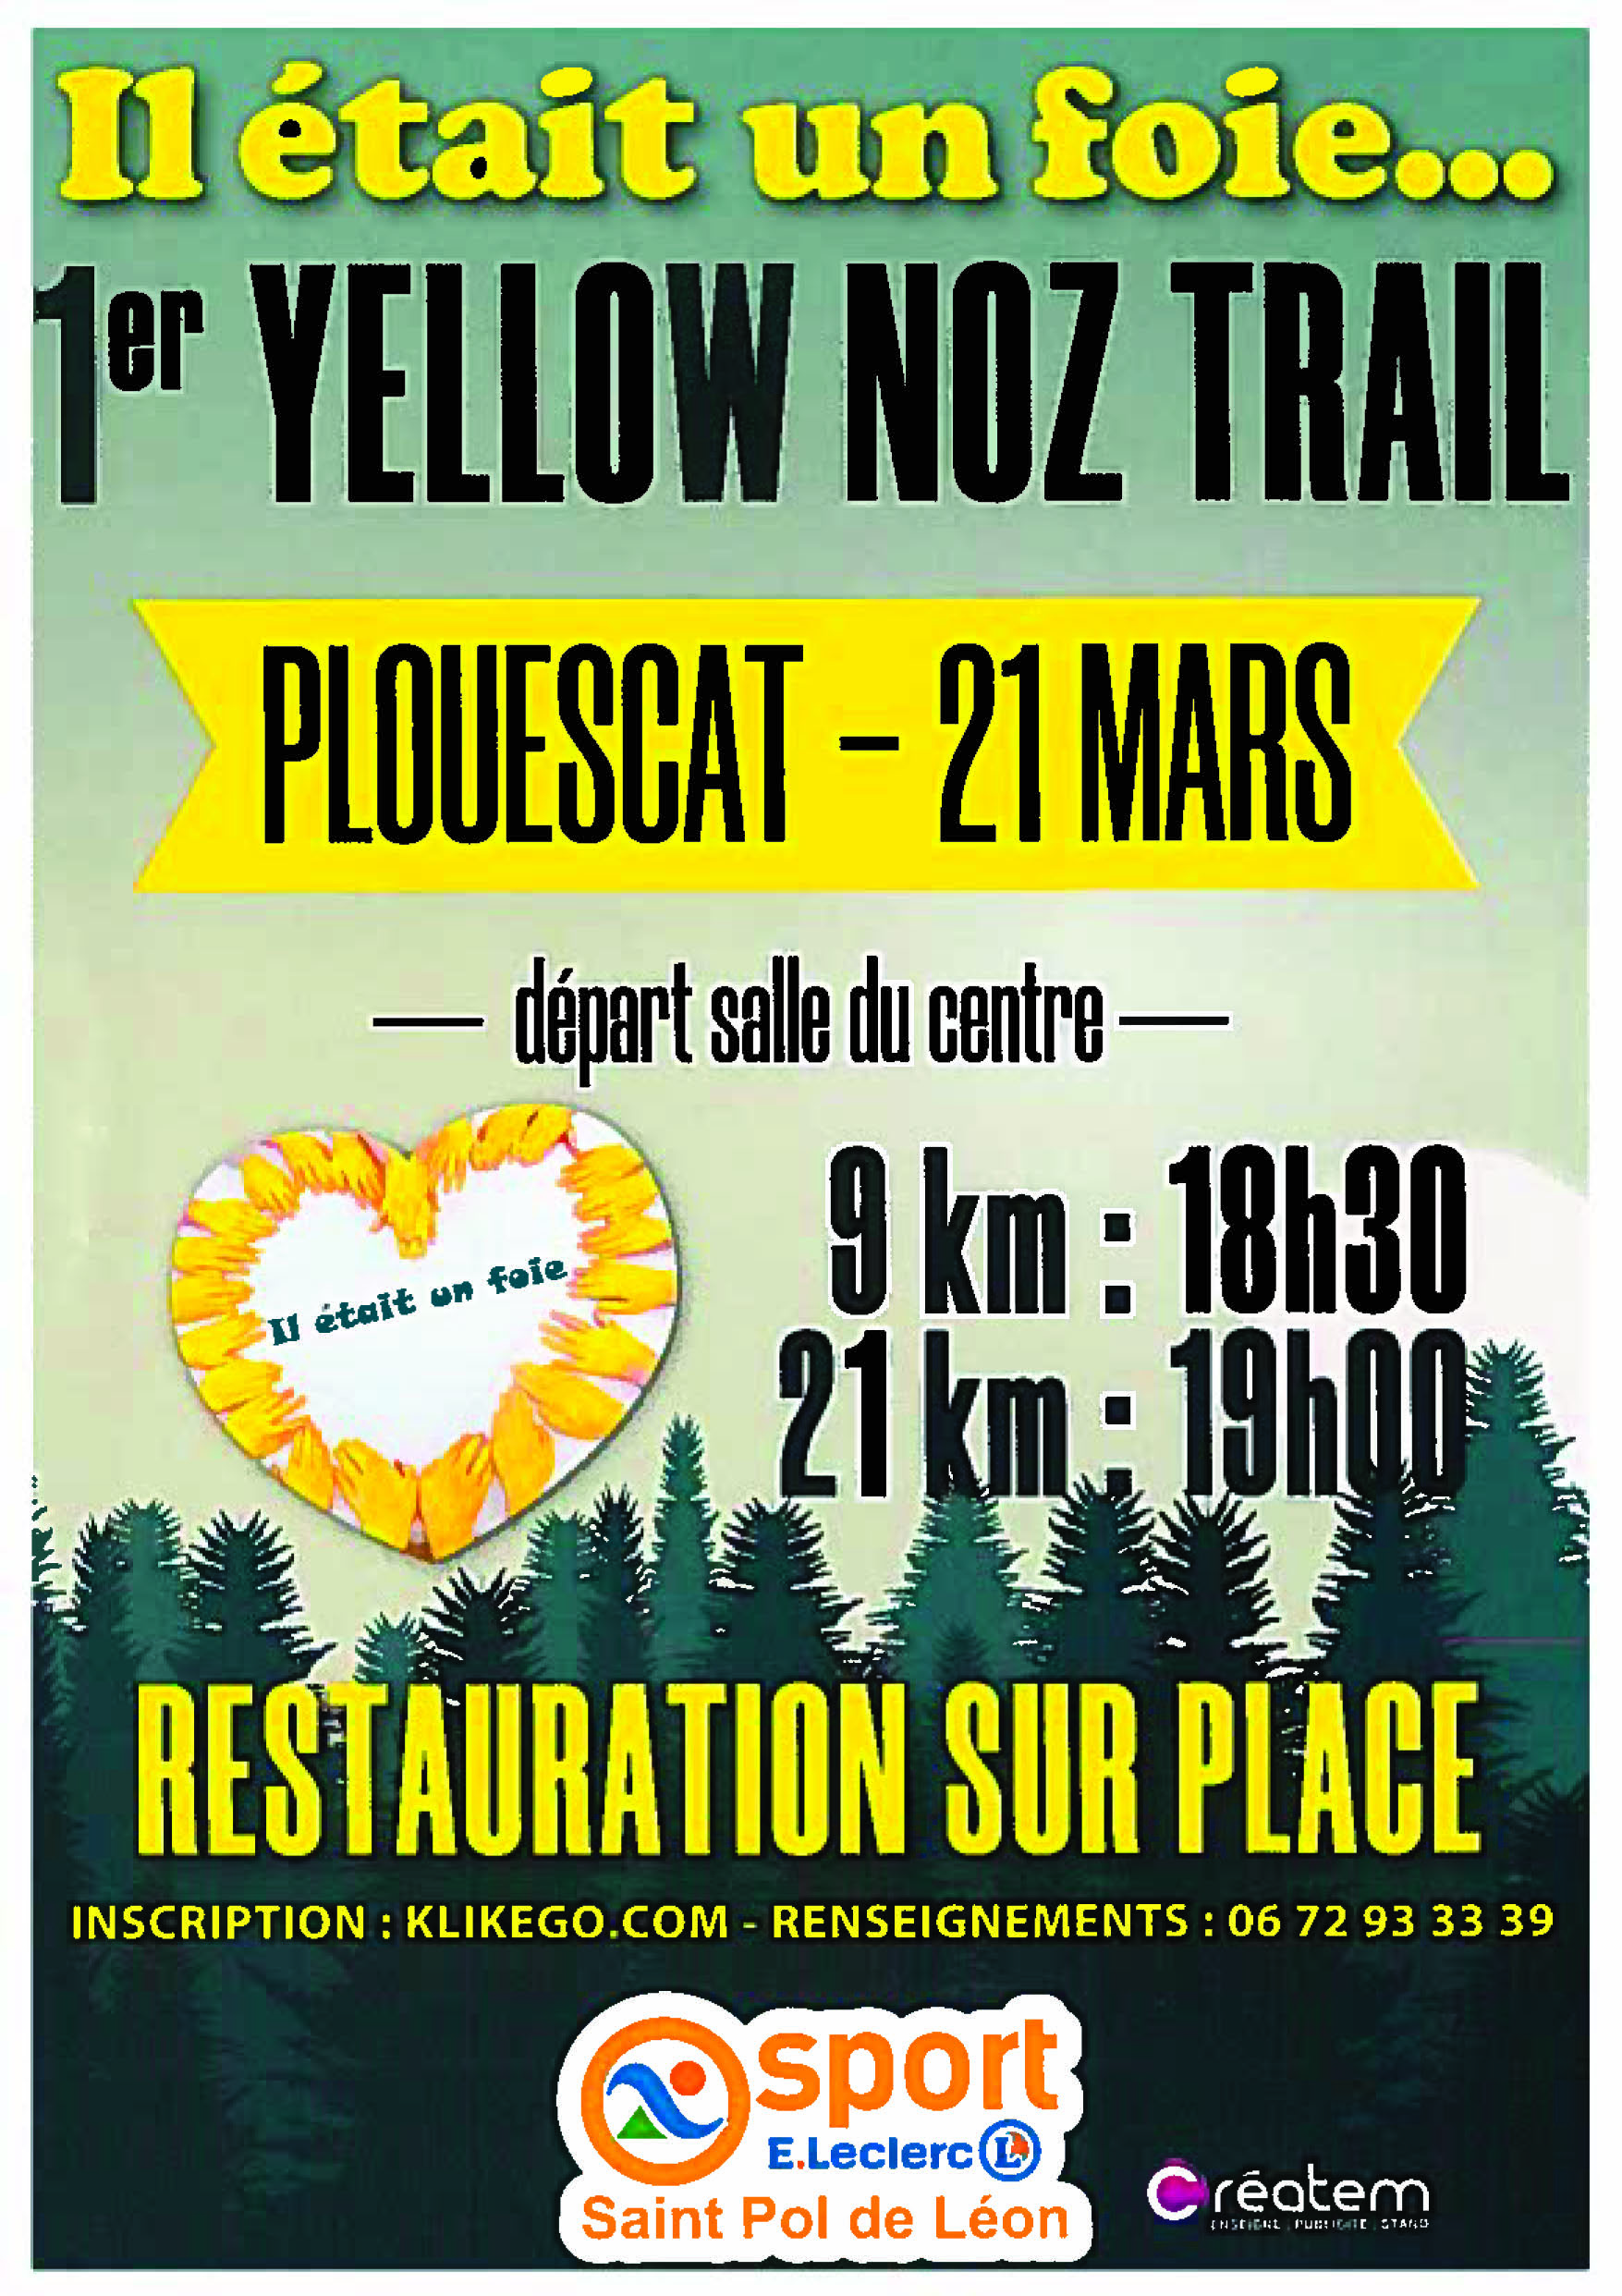 YellowNozTrail